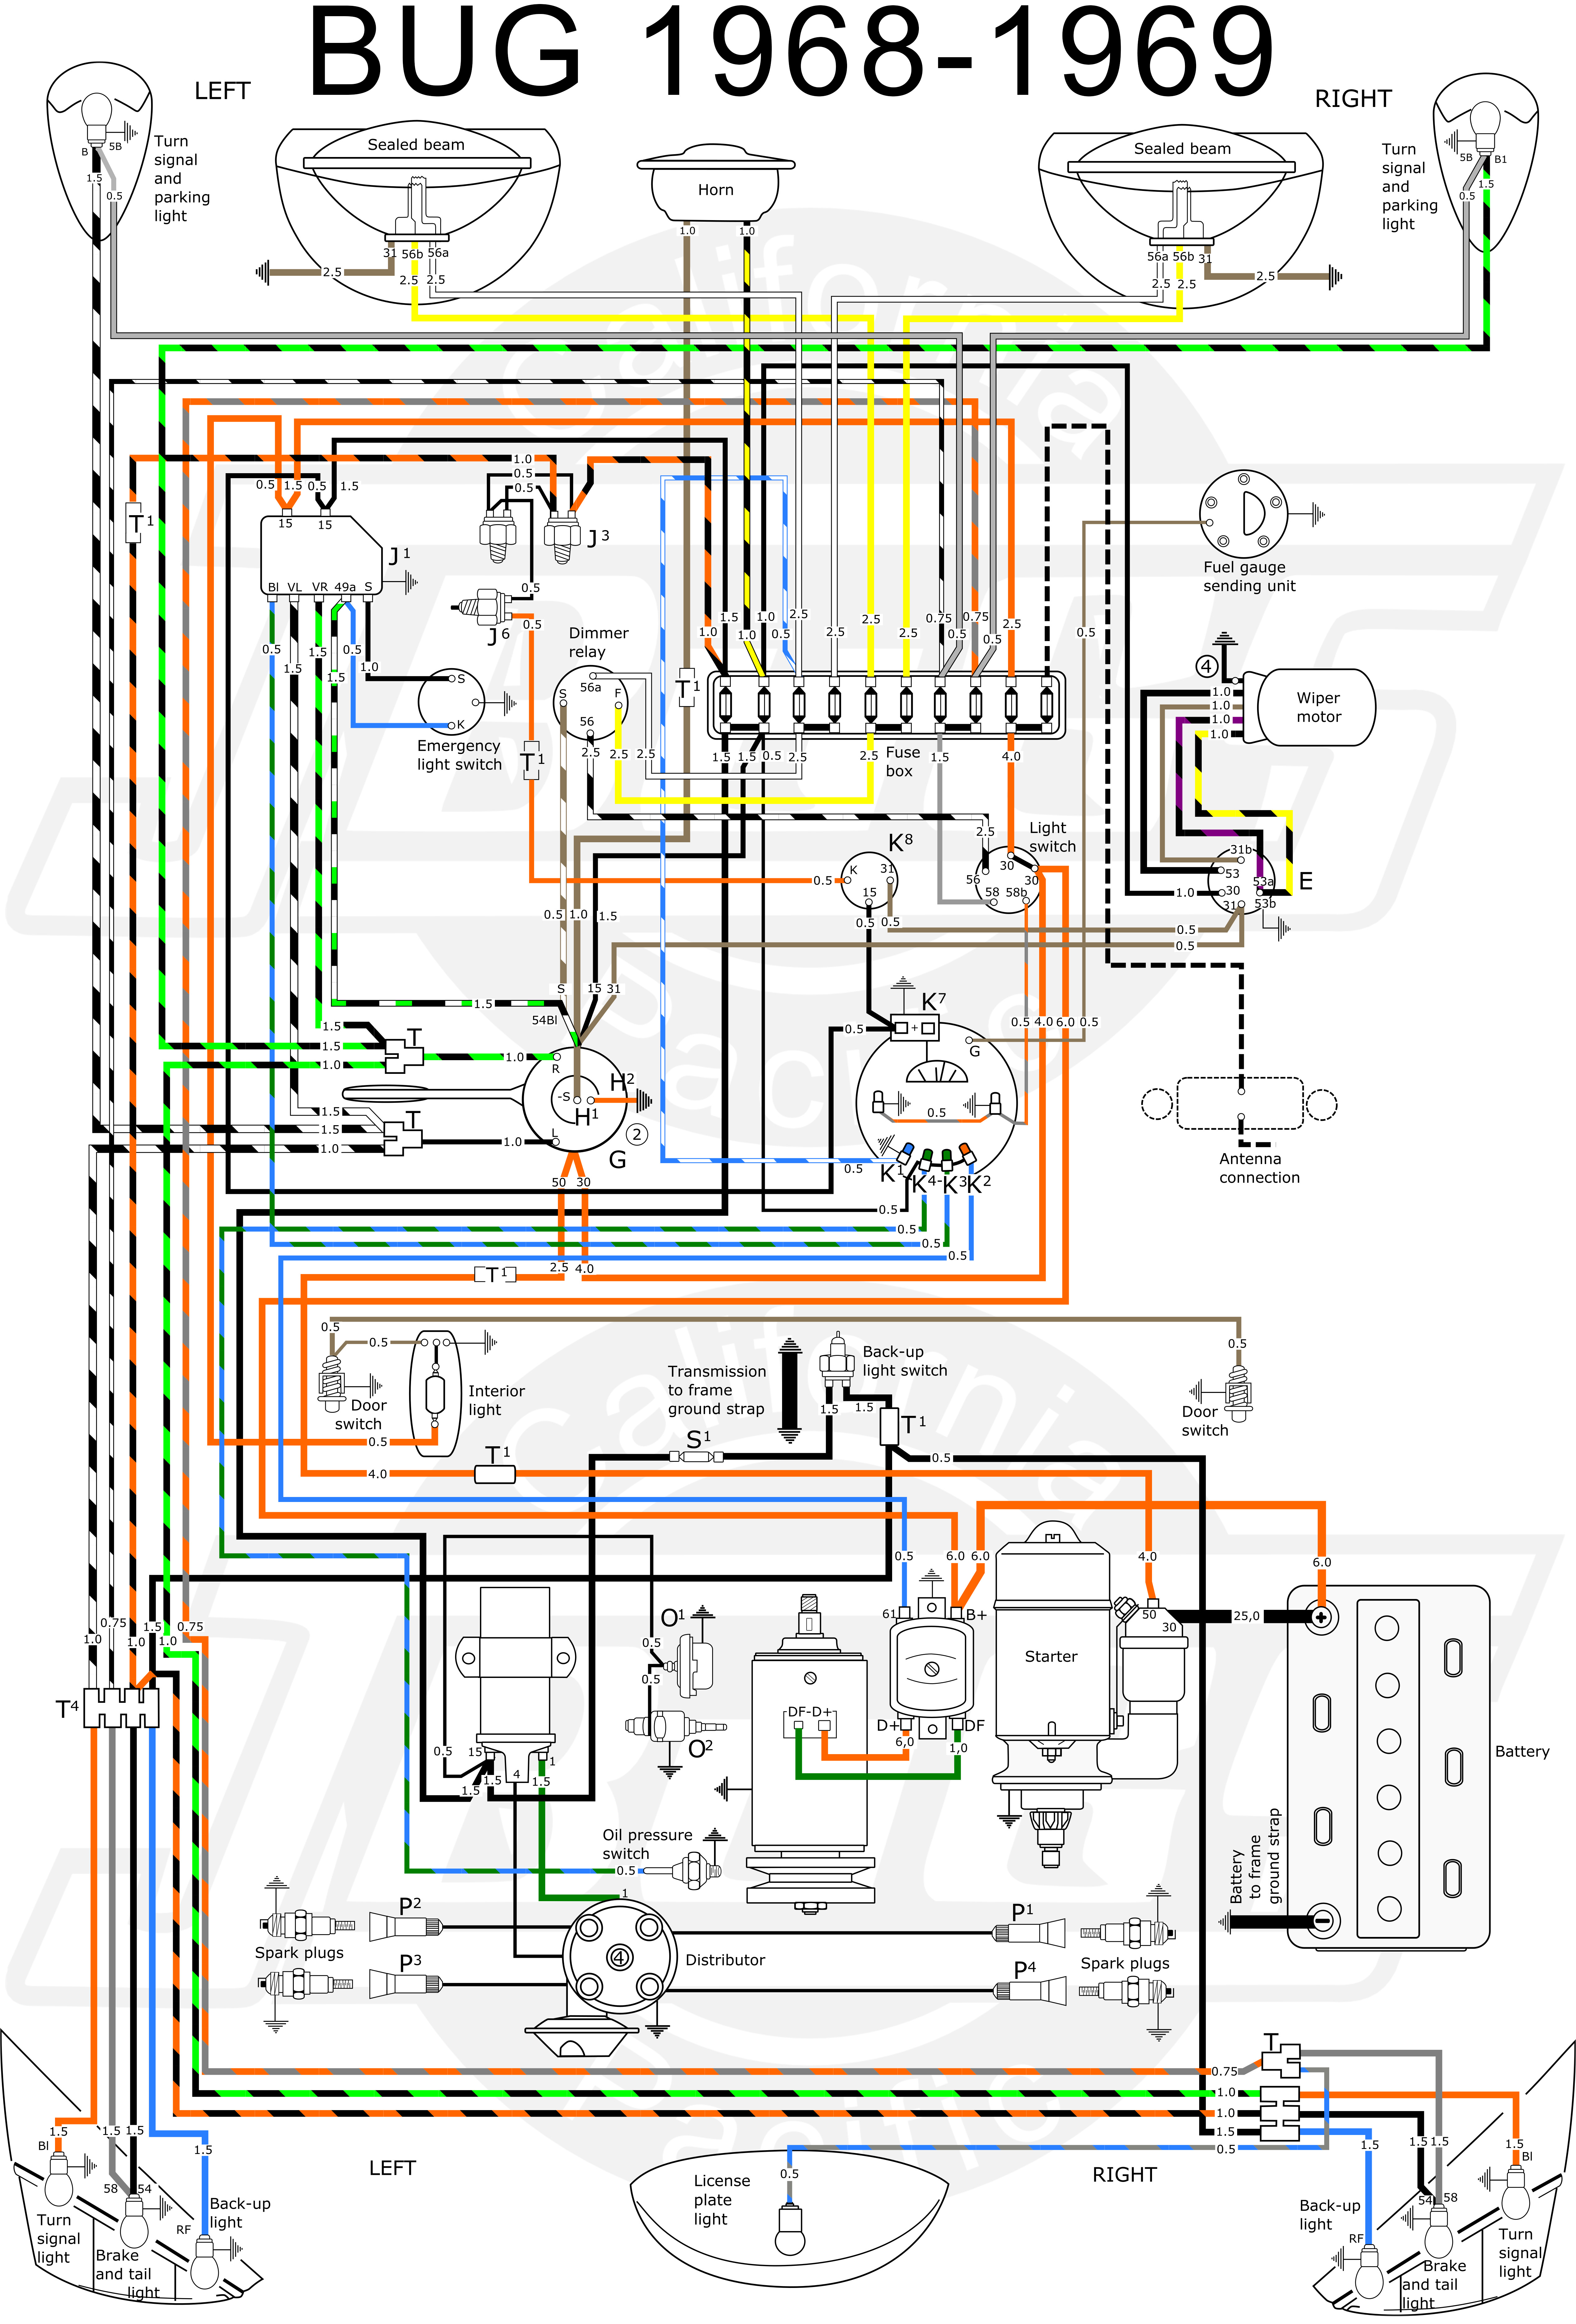 VW Tech Article 1968 69 Wiring on 1969 camaro starter wiring diagram